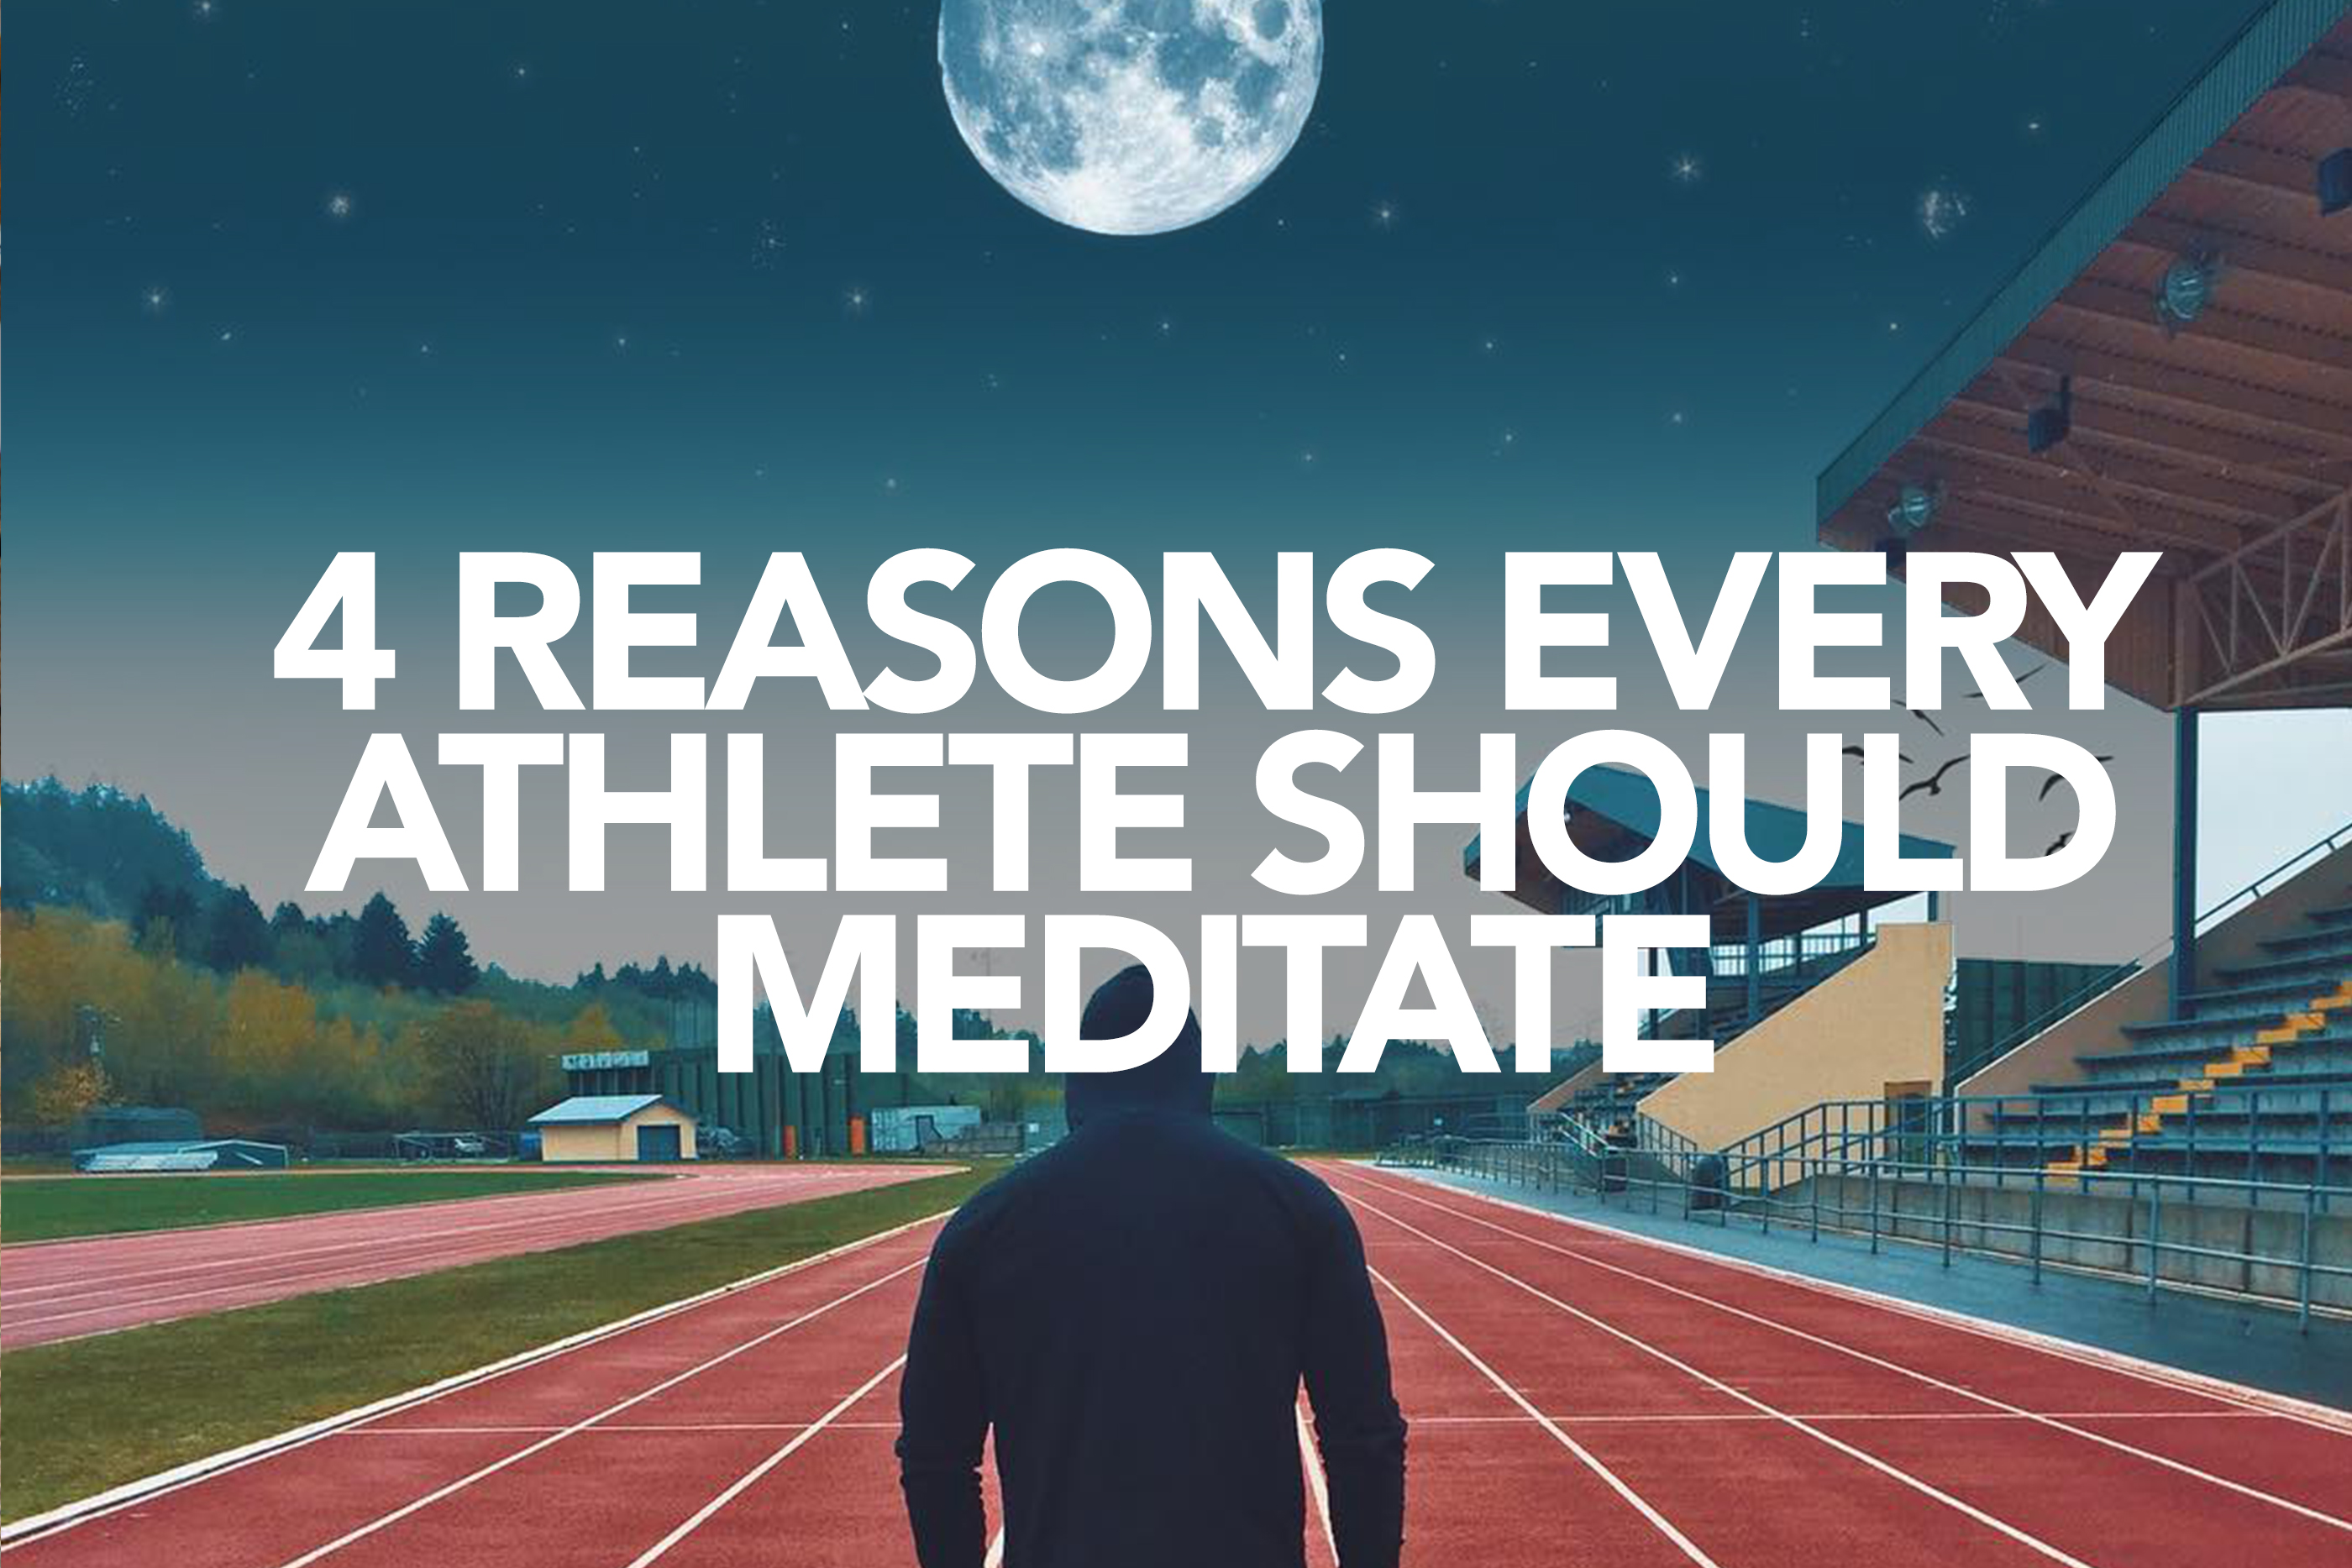 4 Reasons Athlete Should Meditate